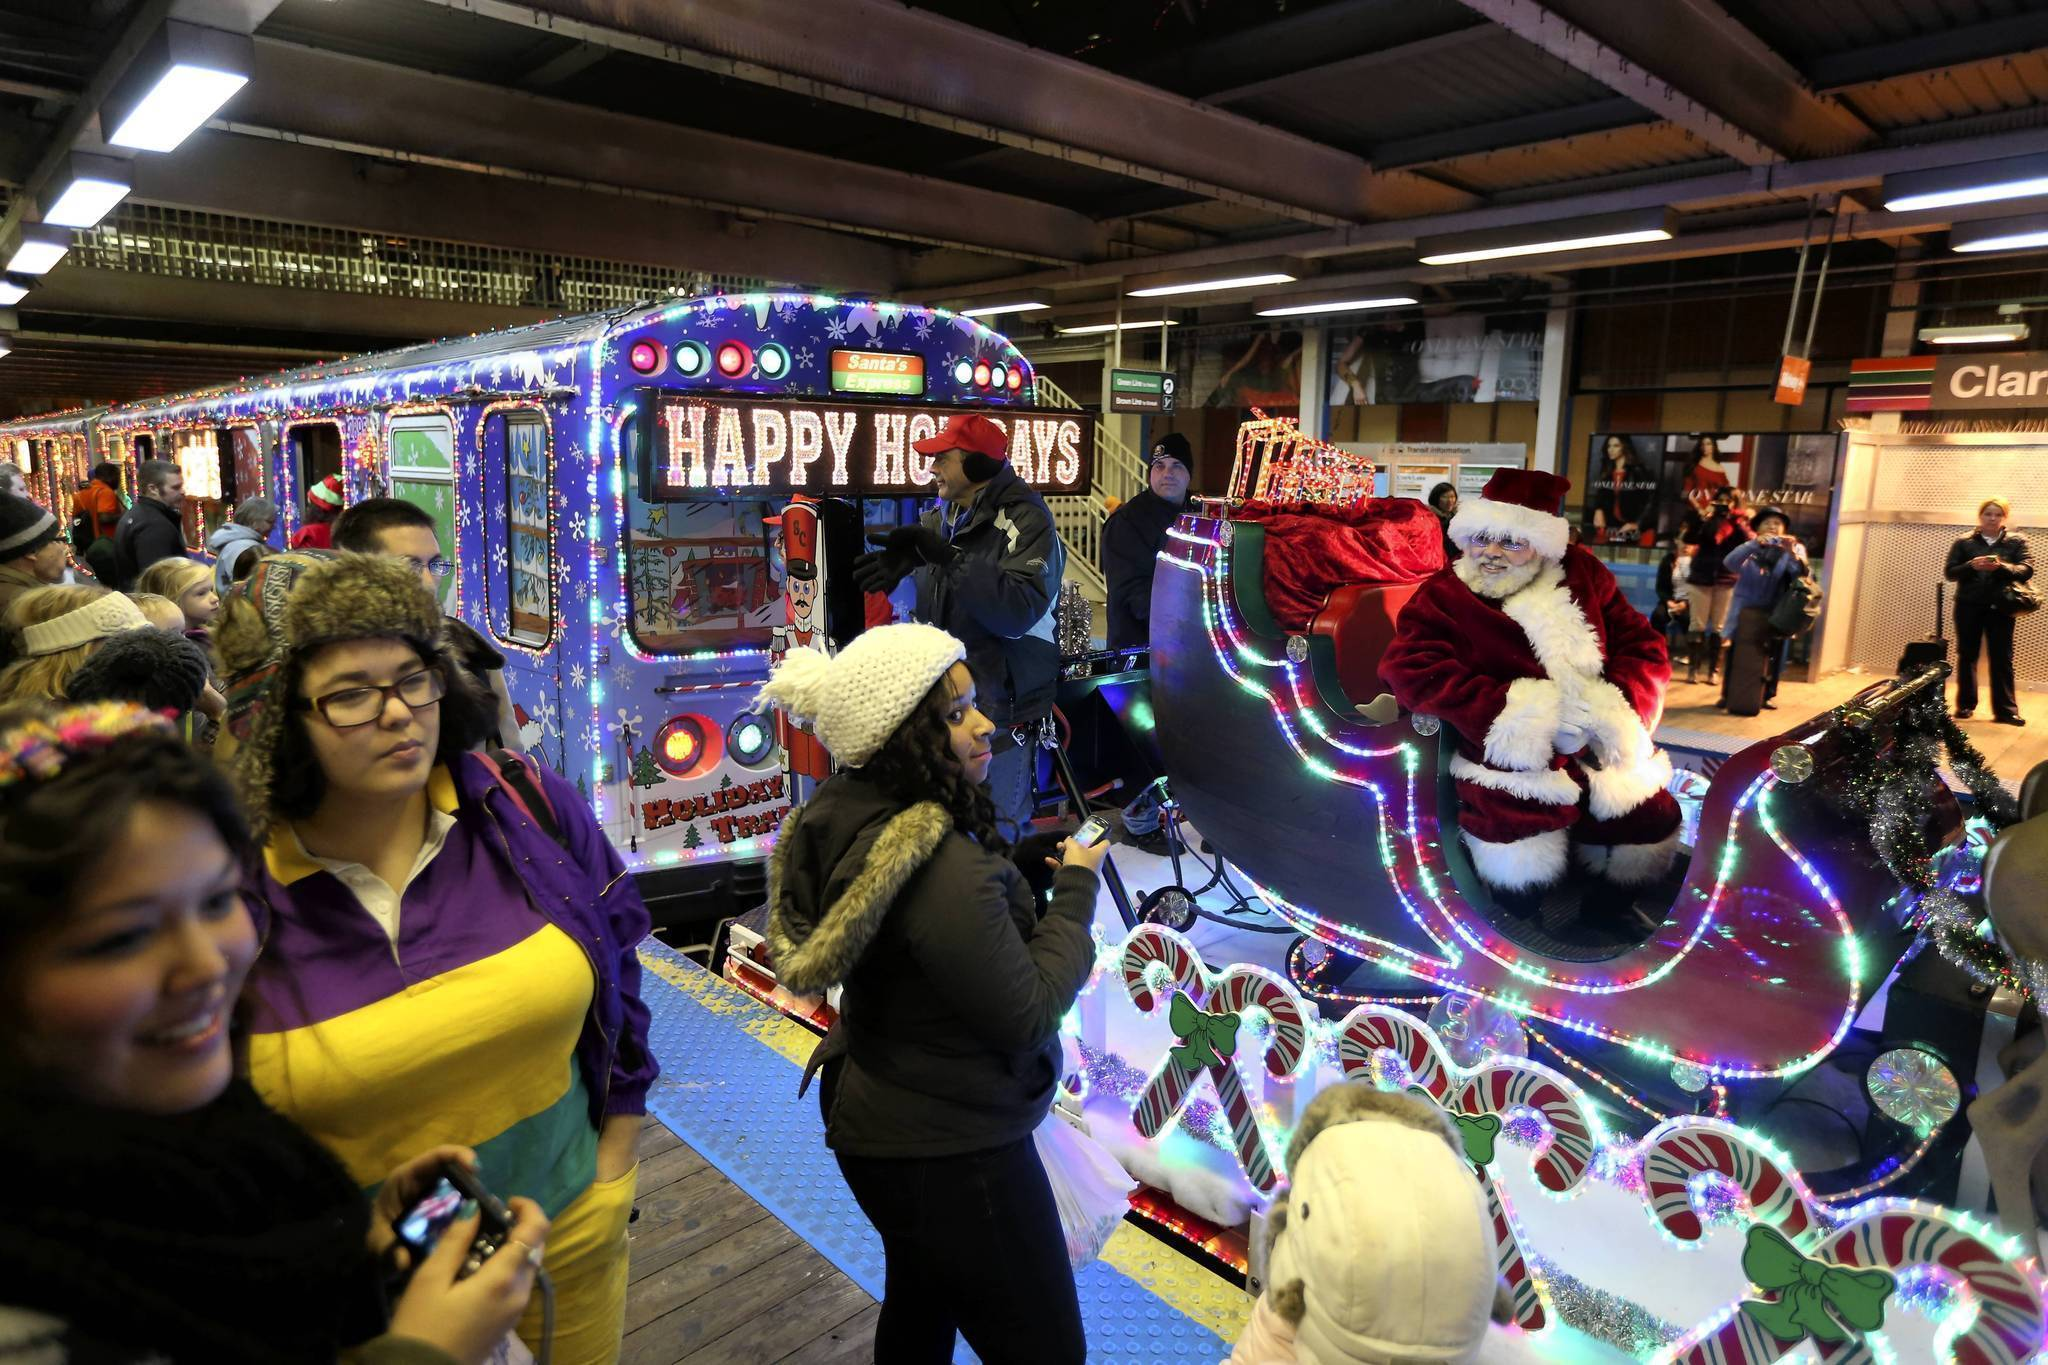 cta holiday train pulled from service for door problem chicago tribune - Cta Christmas Train 2014